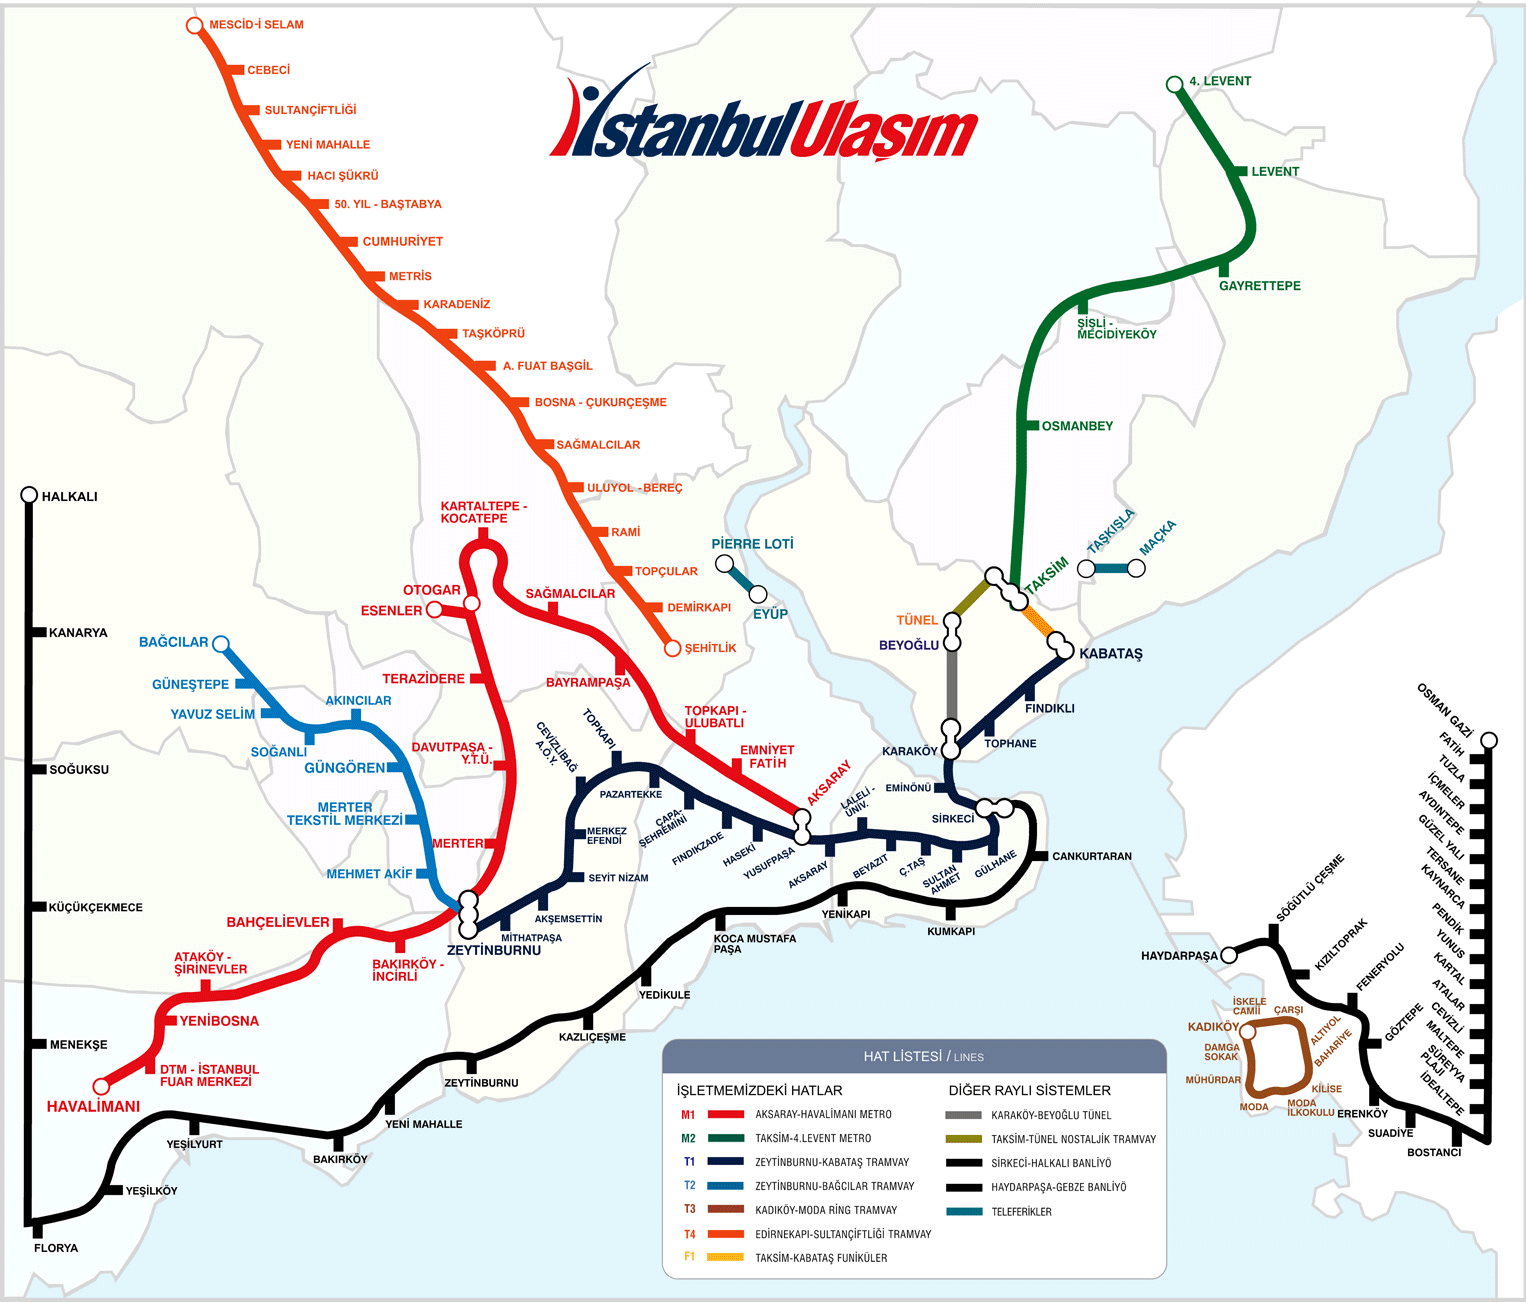 Istanbul Metro System Geographical Map